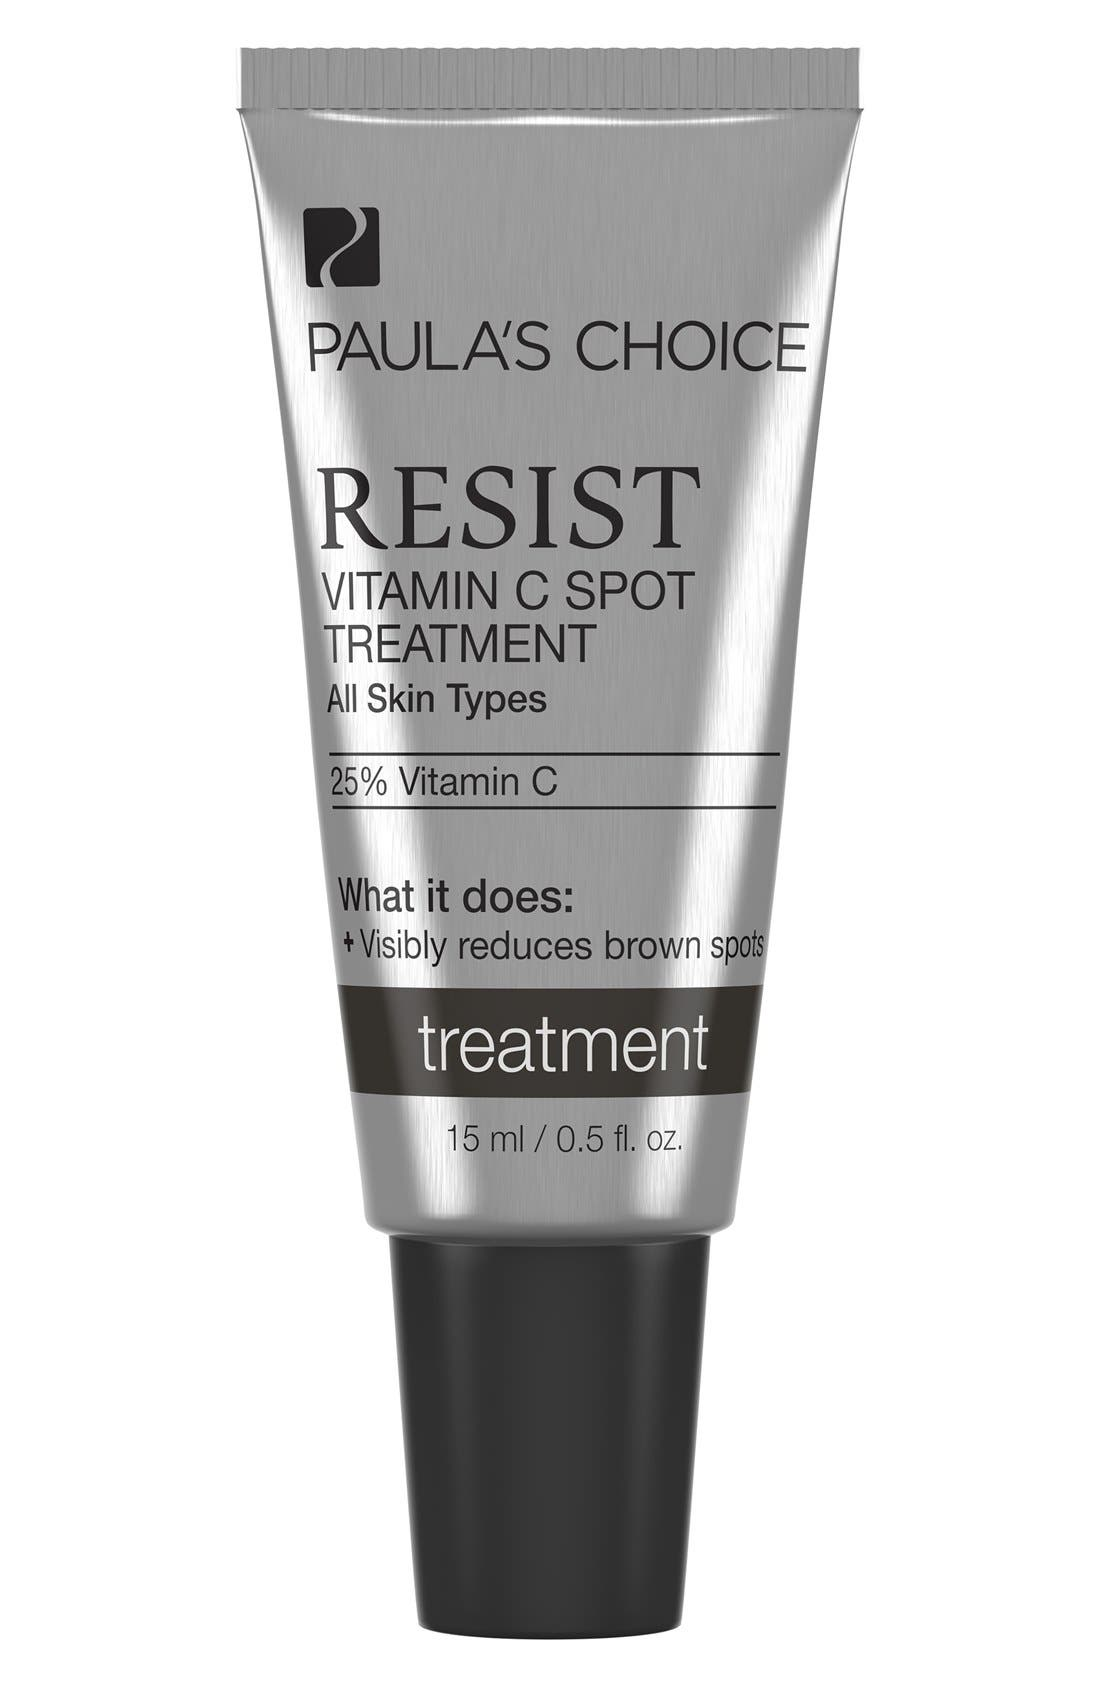 Paula's Choice Resist Vitamin C Spot Treatment